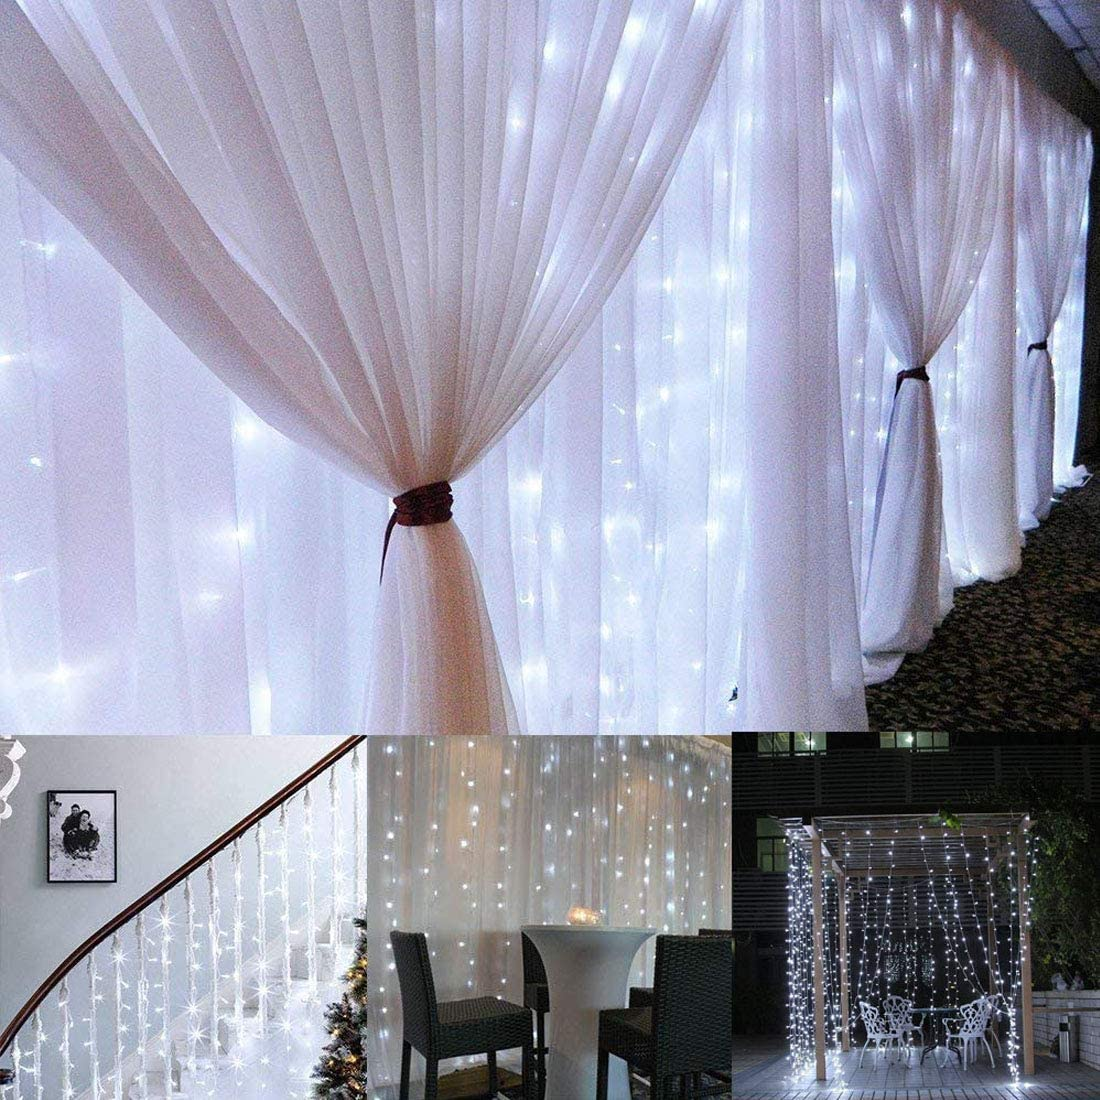 300 LED Window Curtain String Light Wedding Party Home Garden Bedroom Outdoor Indoor Wall Decorations (White)